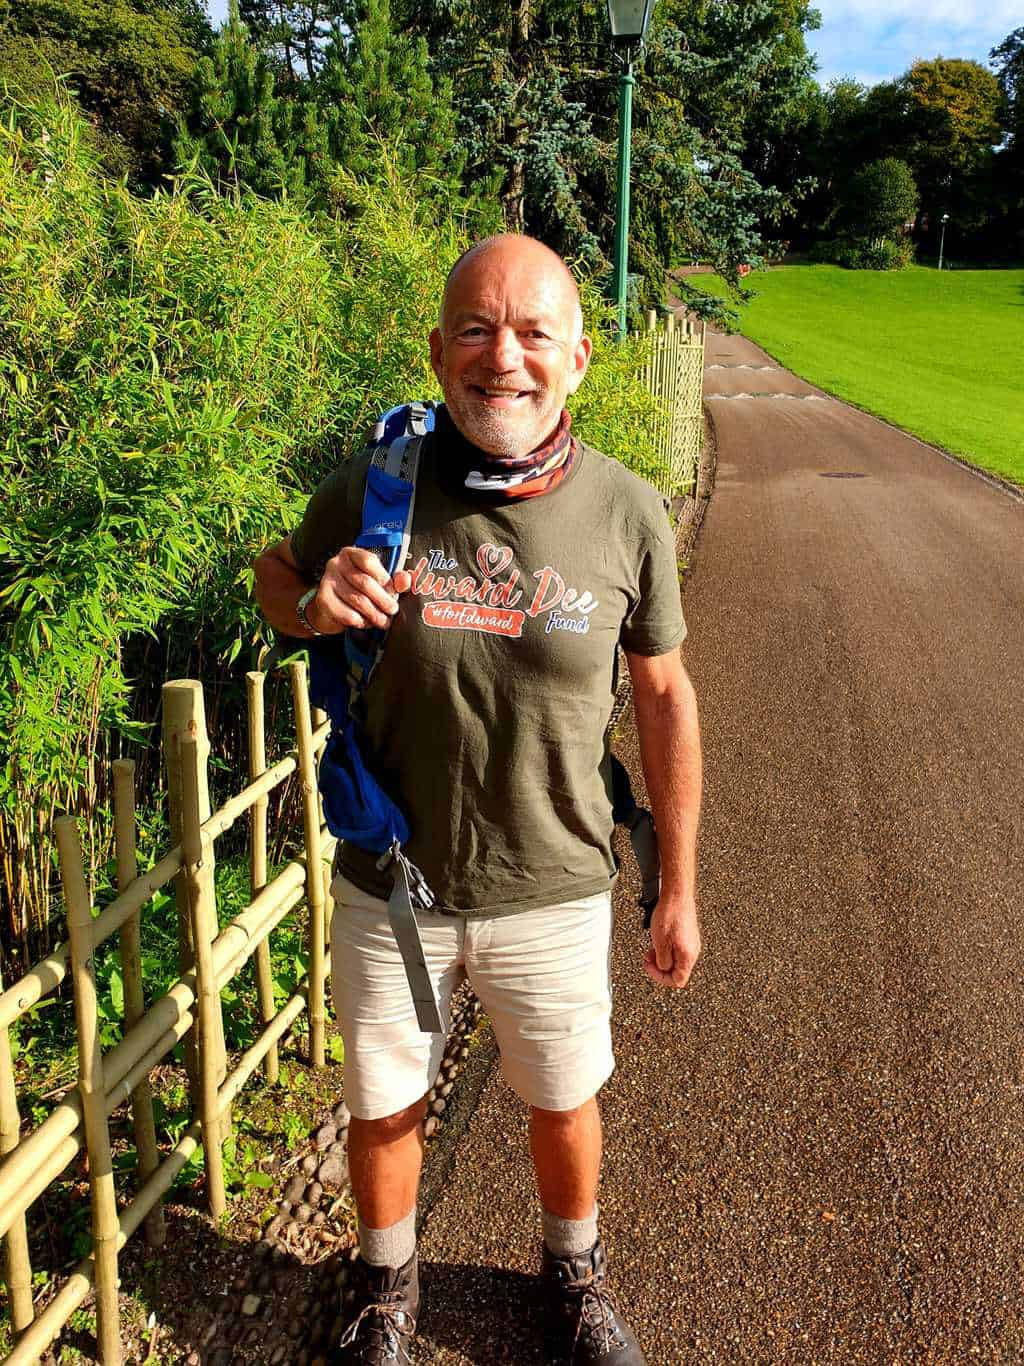 Local, Steve Garrill, walks The North West Way to raise money for The Edward Dee fund